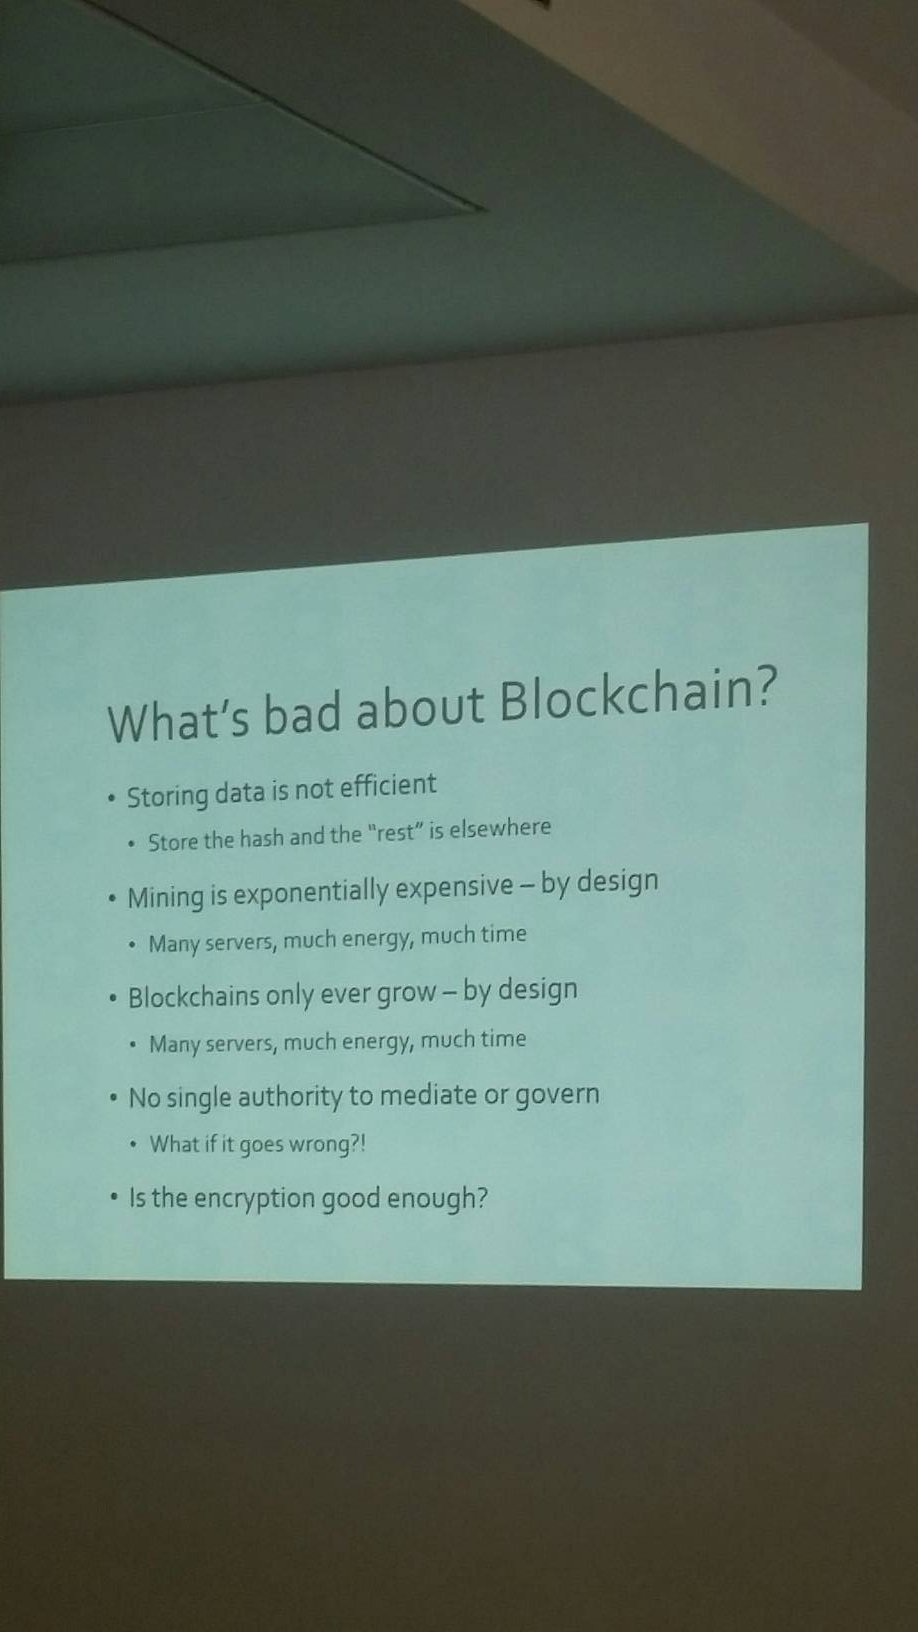 @maxleibman @tom_peters The Blockchain is ecologically bad for the environment. @netikx #netikx86 https://t.co/VFQWiwckfv